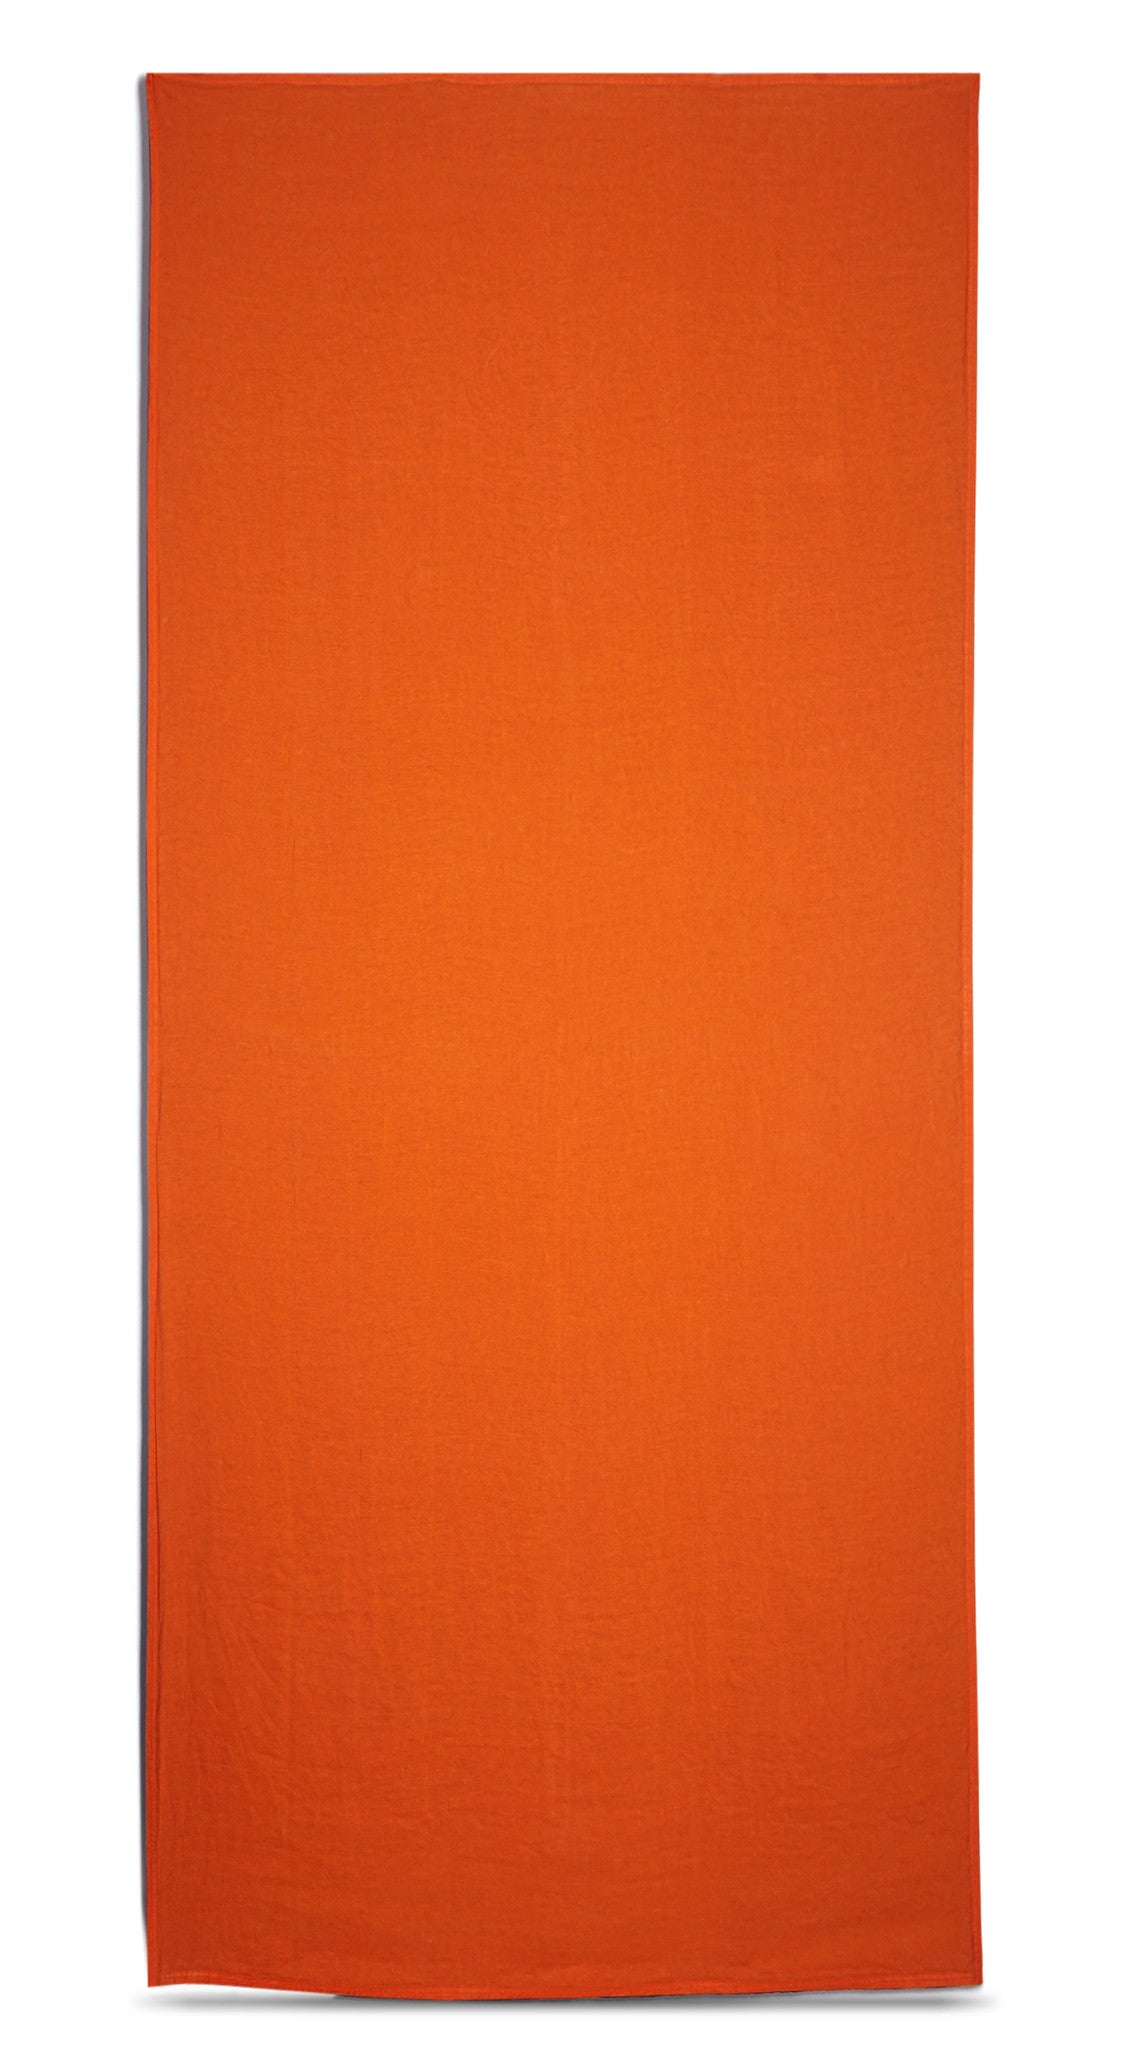 Reversible Linen Tablecloth in Dark Blue and Vibrant Orange